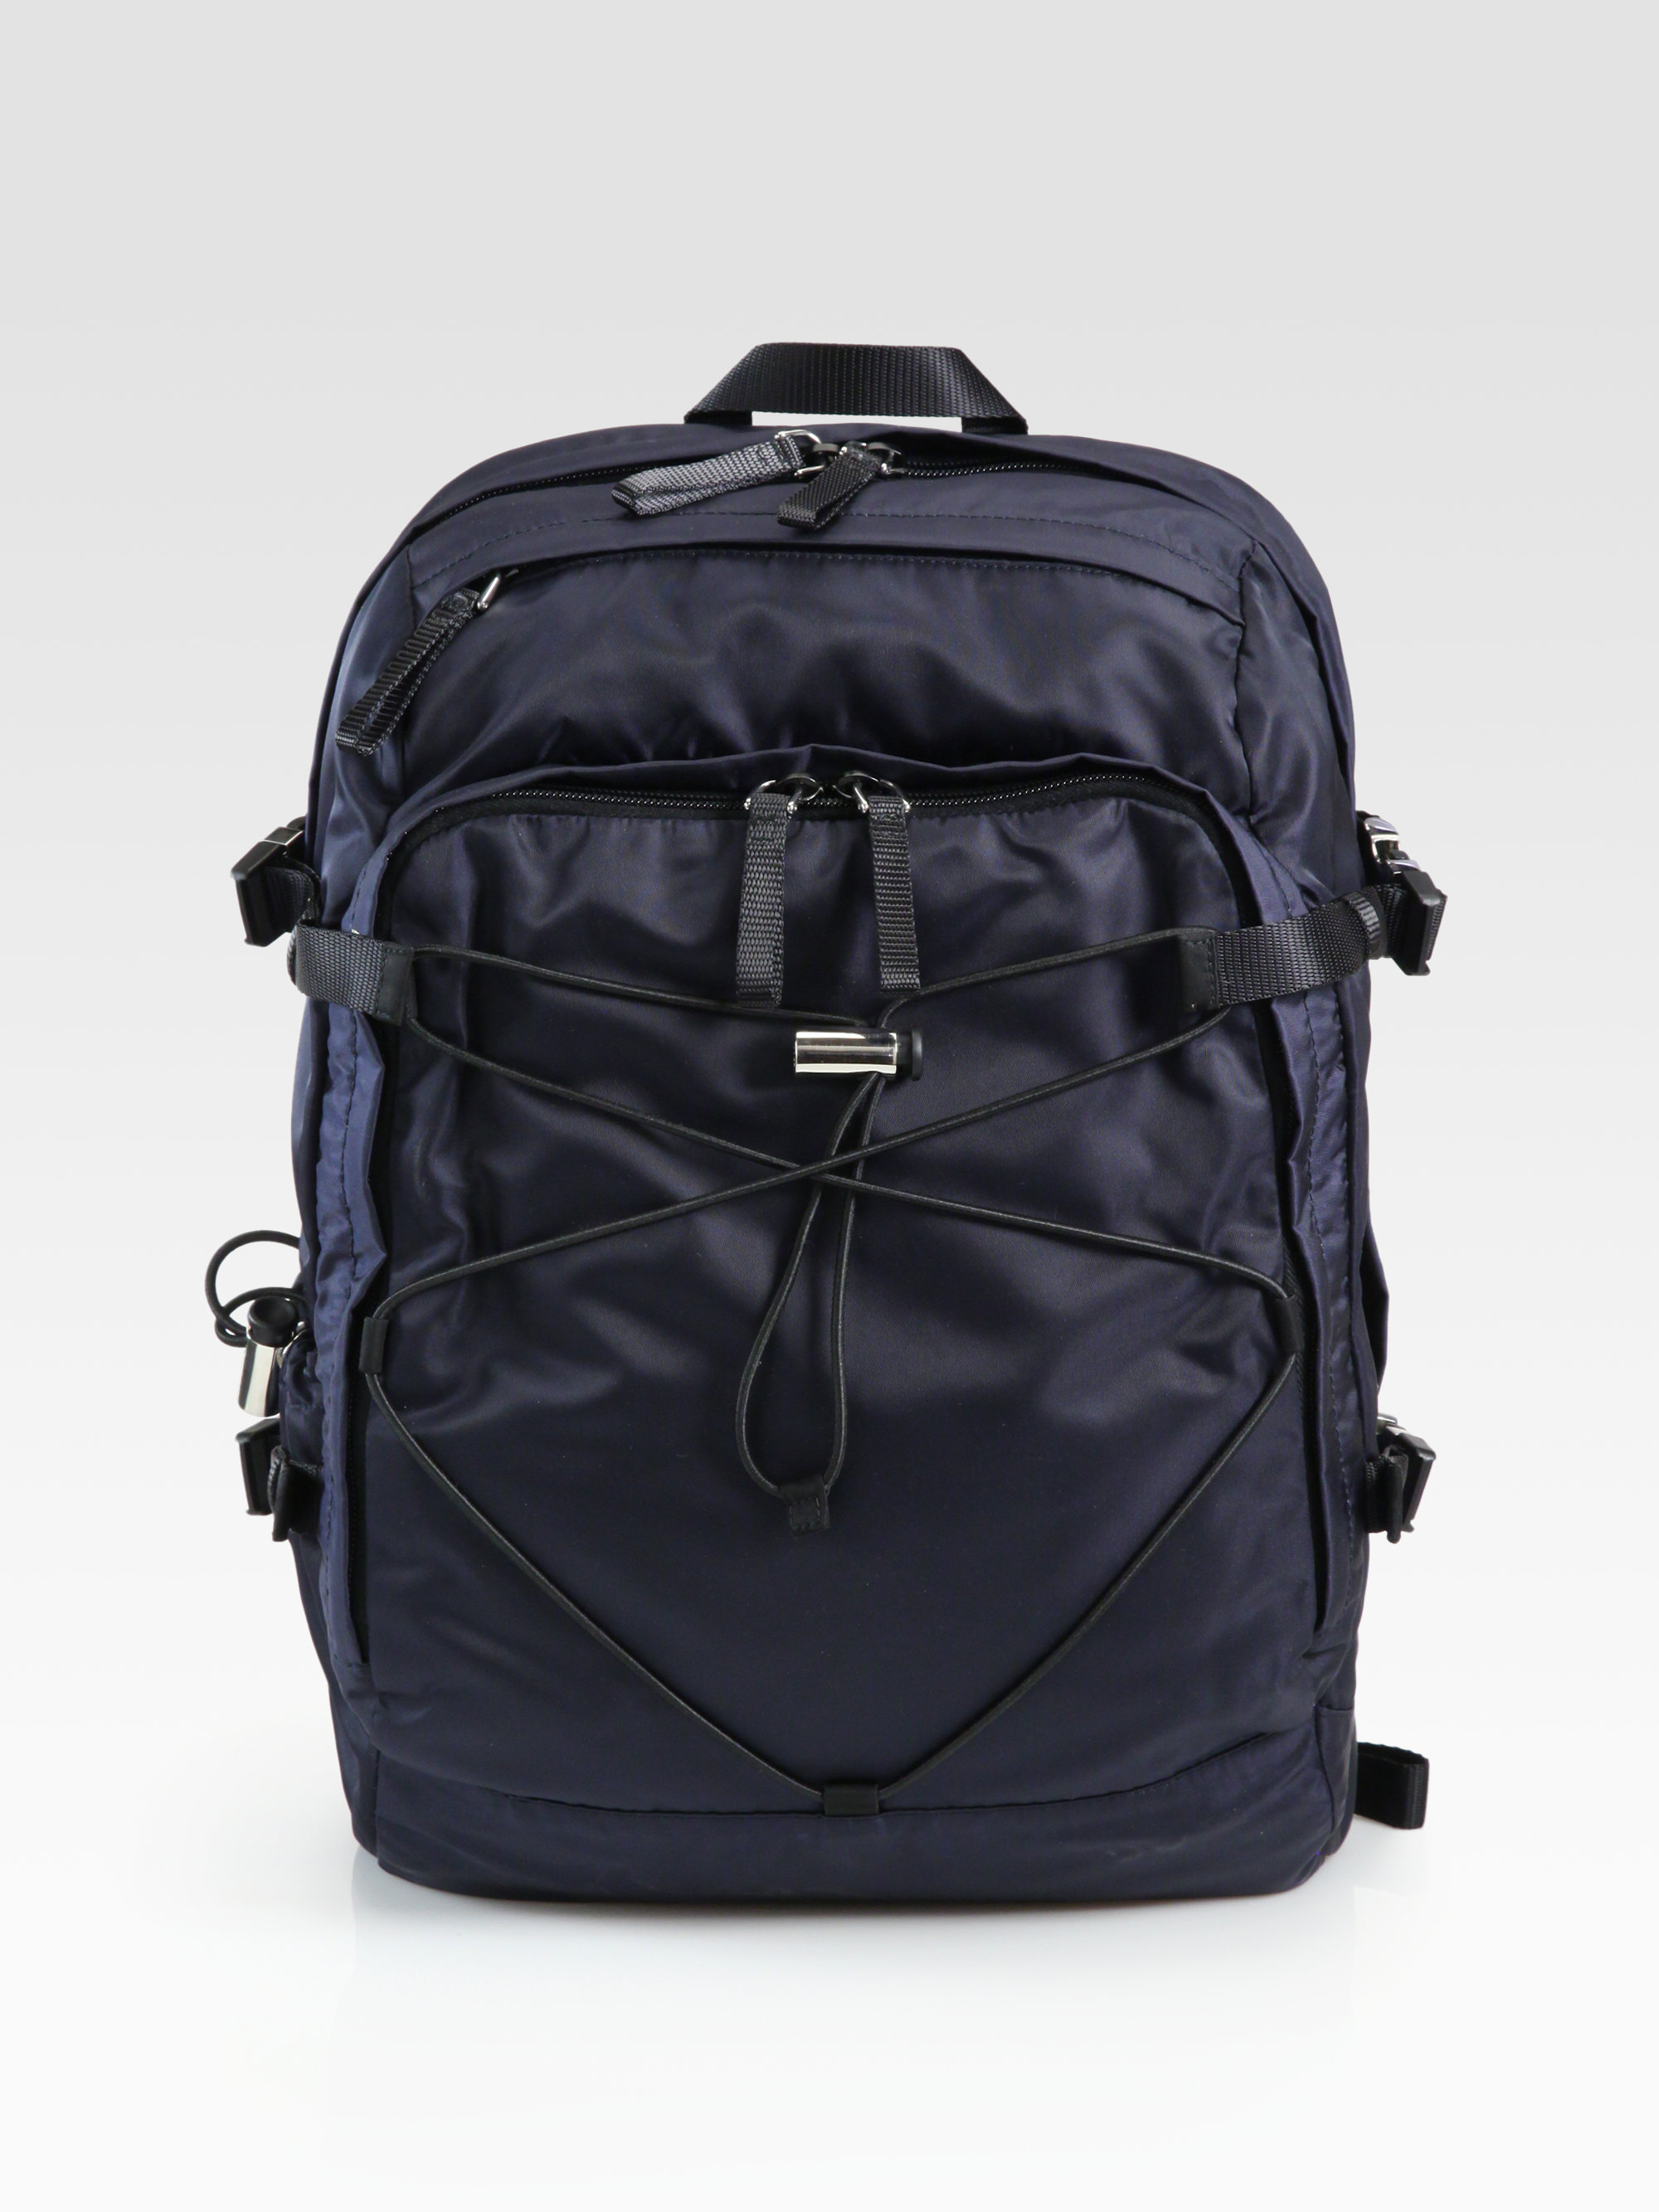 c50dc0c8e0016c Macy's, we recommend 35- liter packs is design-driven manufacturer finest  quality bags.